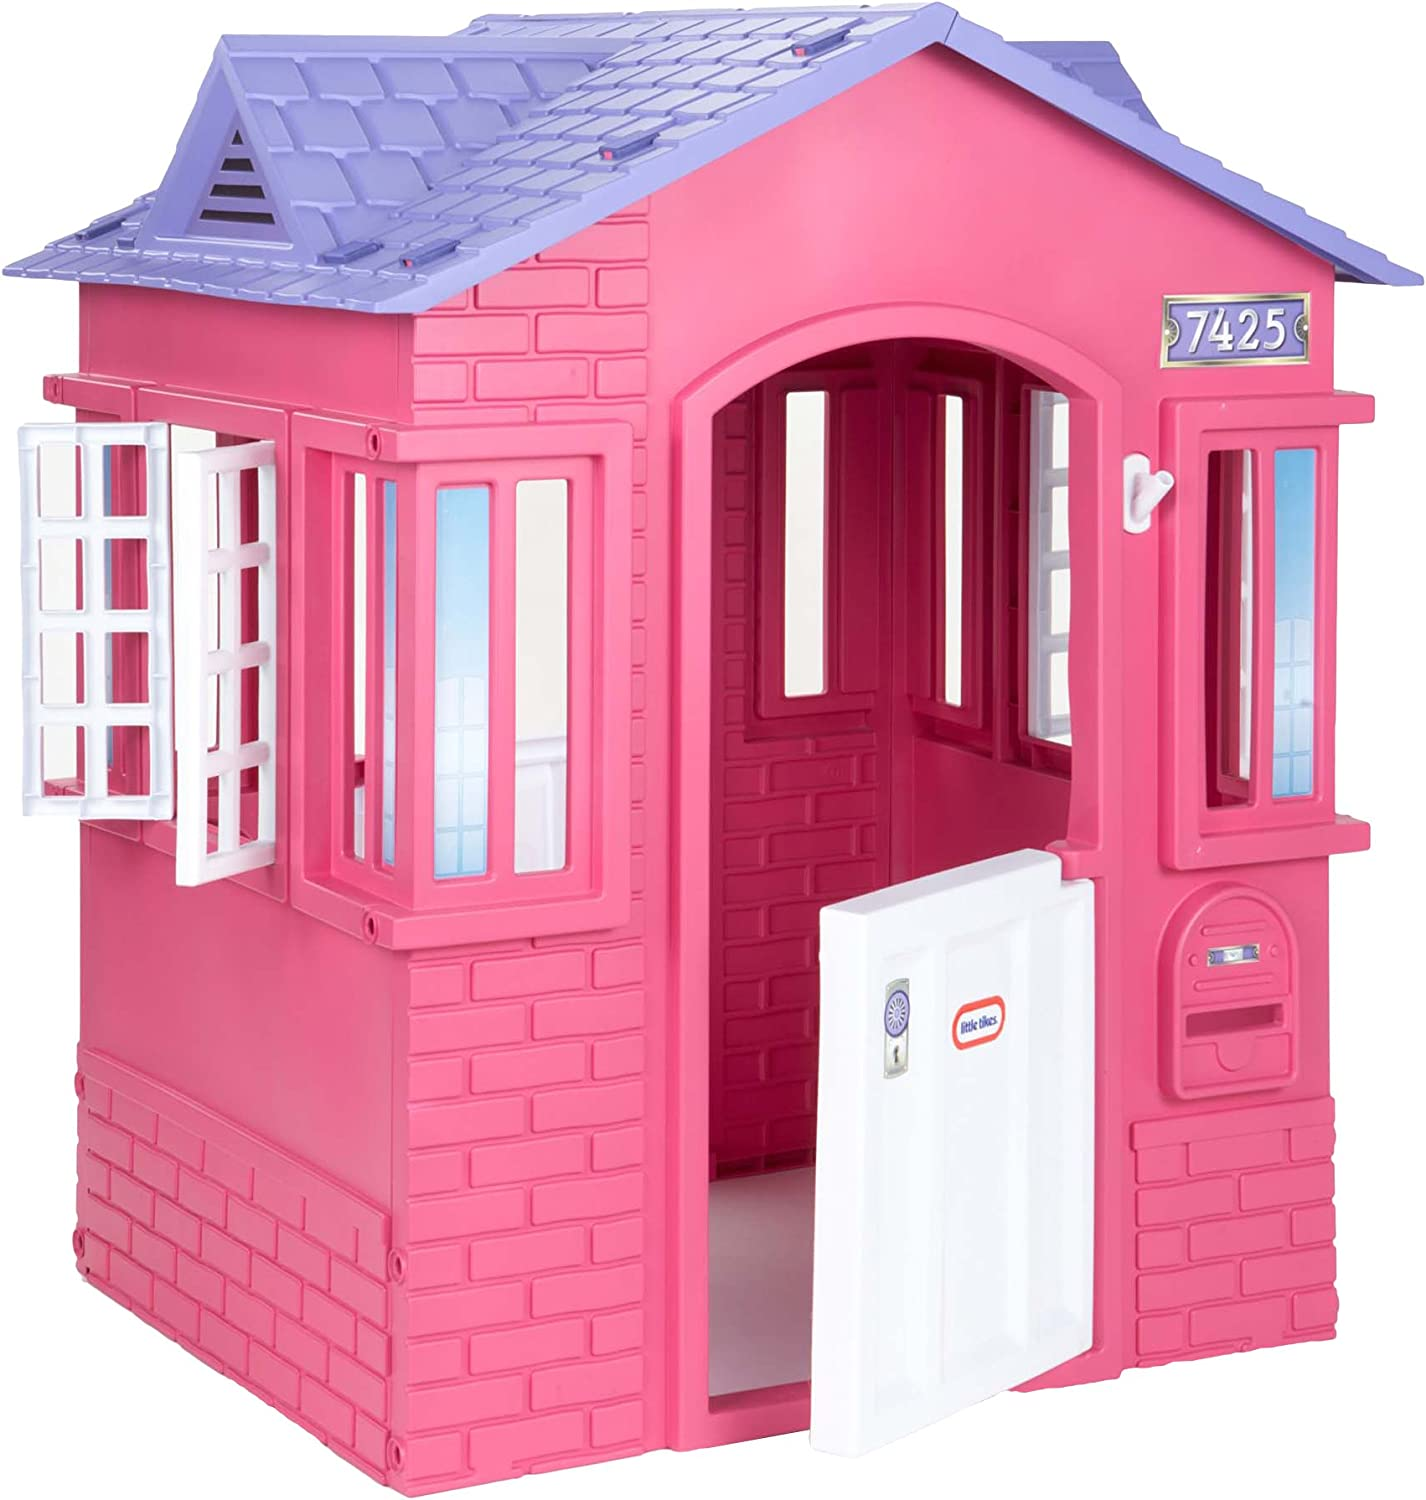 Amazon Com Little Tikes Cape Cottage House Pink With Working Doors Window Shutters Flag Holder Easy Installation Process For Kids 2 8 Years Old Toys Games